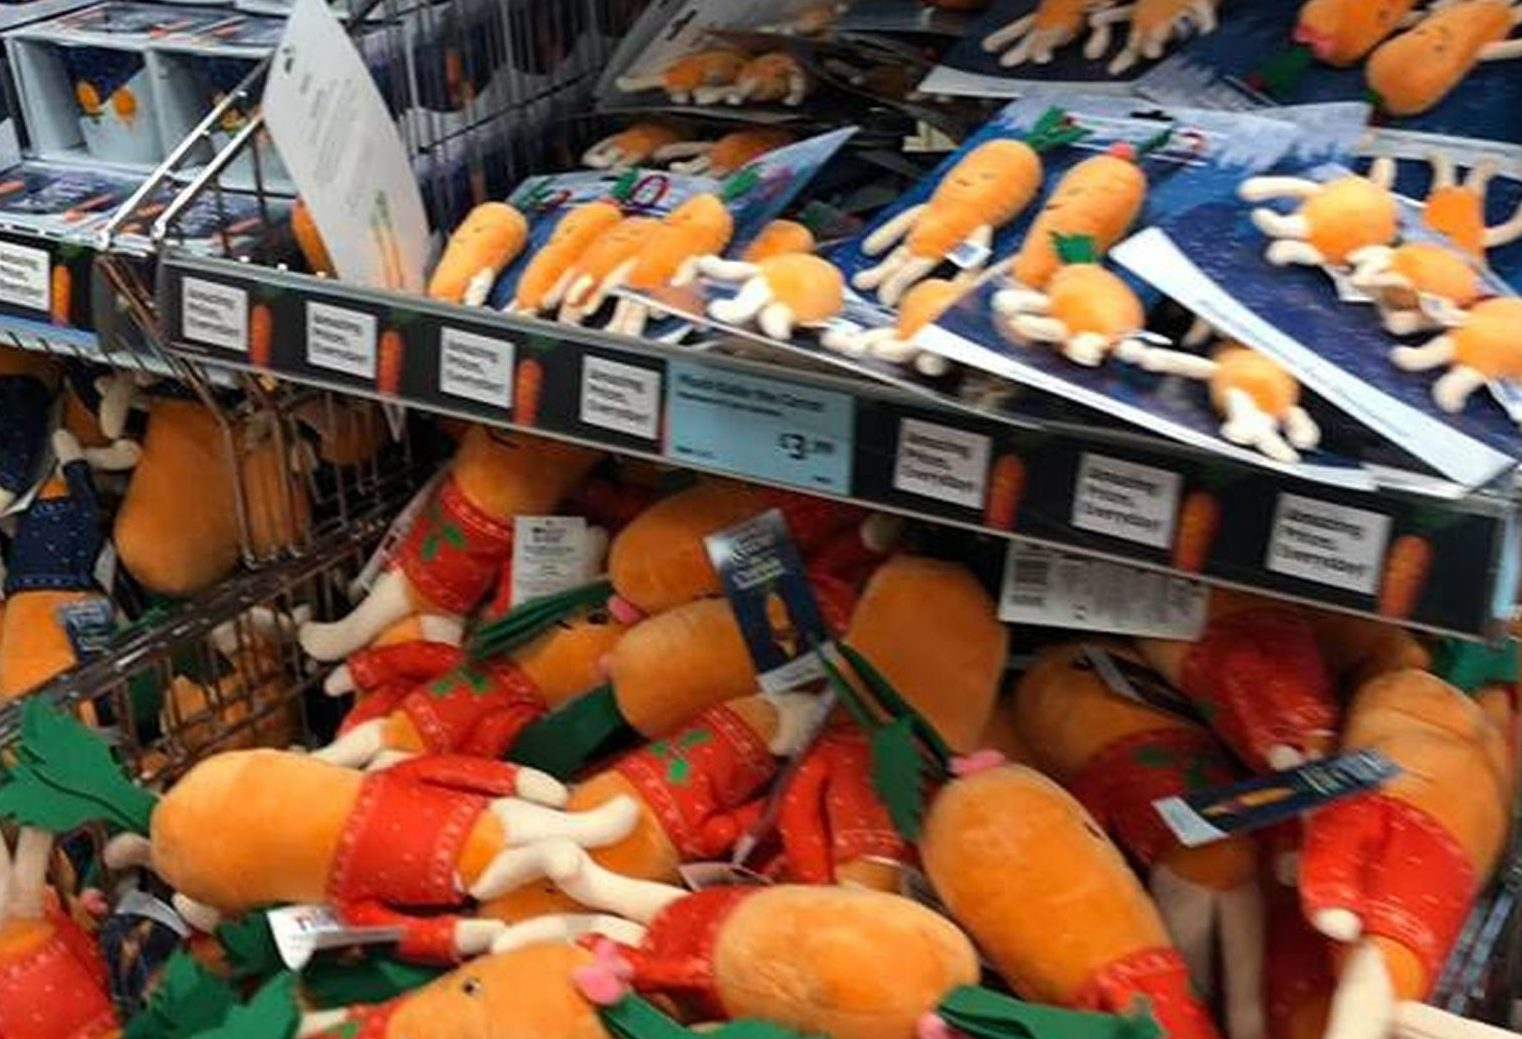 PIC FROM Kennedy News and Media (PICTURED: HUGE STOCK OF KEVIN THE CARROT TOYS ON SALE IN ALDI) Families have been queuing since 6am outside Aldi stores this morning [THURS] to get their hands on the Kevin the Carrot toy range - with some splurging HUNDREDS of pounds. Despite only being released today, the highly sought-after toys have been being flogged on eBay for more than ??100 for days - prompting some shoppers to claim it must be staff selling them for profit. Dad Matthew Ross queued from 6.30am in the cold with his family of five to get secure a set of the toys each, which saw them splash ??124 in minutes. SEE KENNEDY NEWS COPY - 0161 697 4266